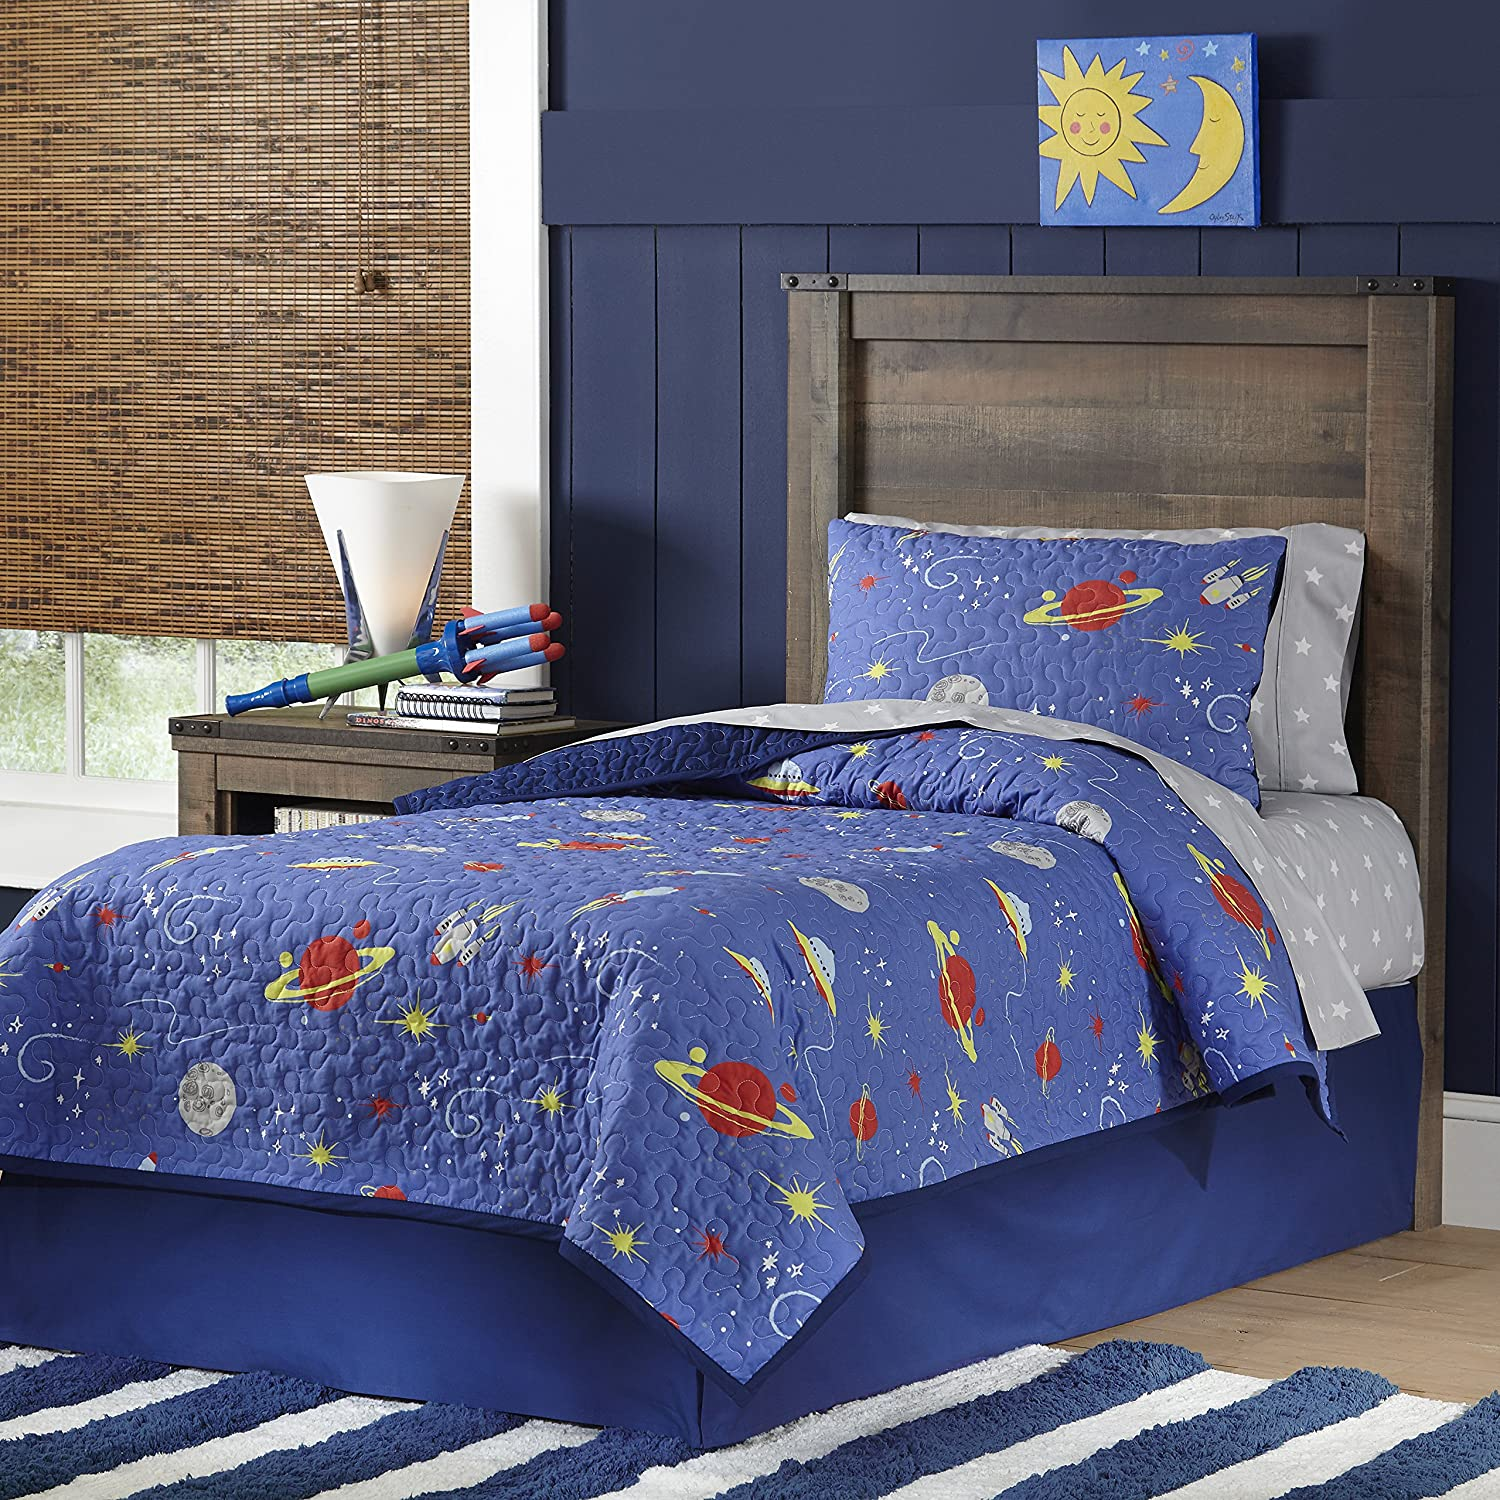 Lullaby Bedding Space Twin Cotton Printed 2 Piece Quilt Set Safah Inc. 200QL-TSPACE